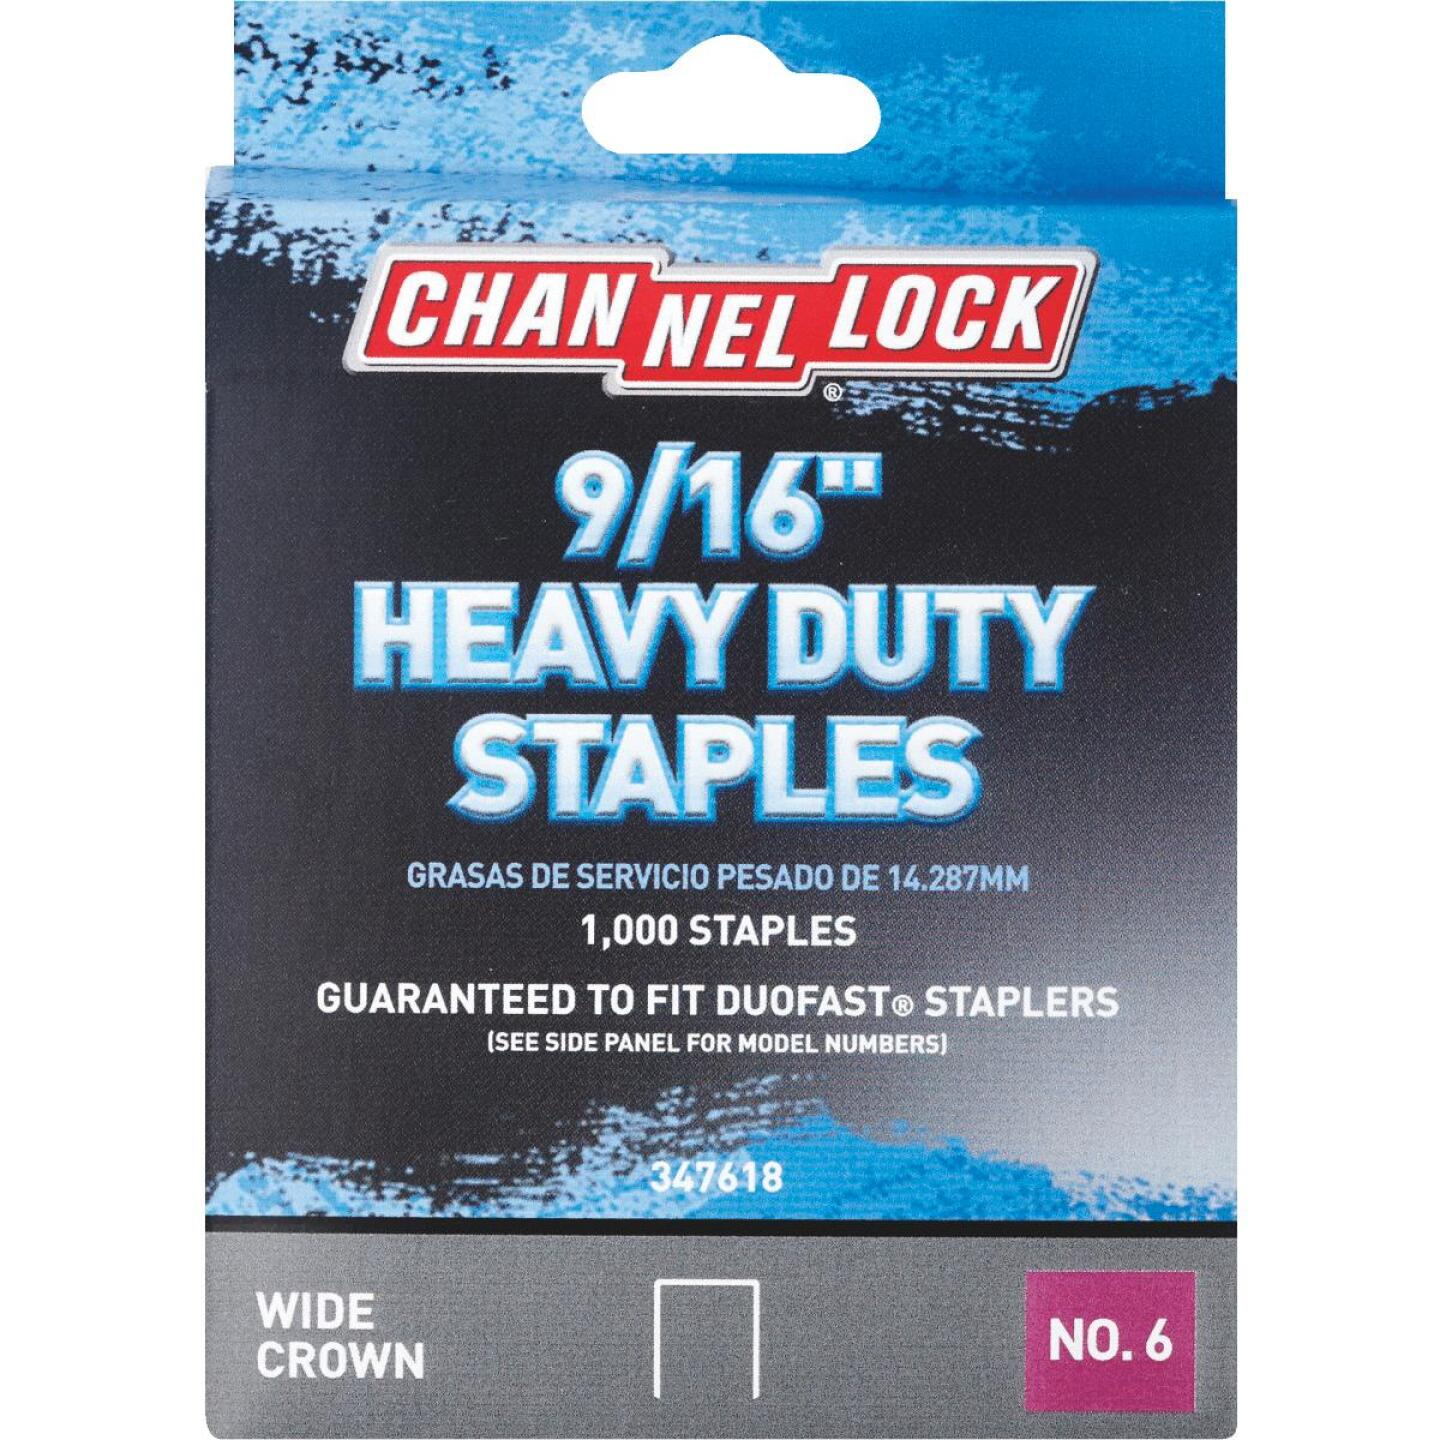 Channellock No. 6 Heavy-Duty Wide Crown Staple, 9/16 In. (1000-Pack) Image 1